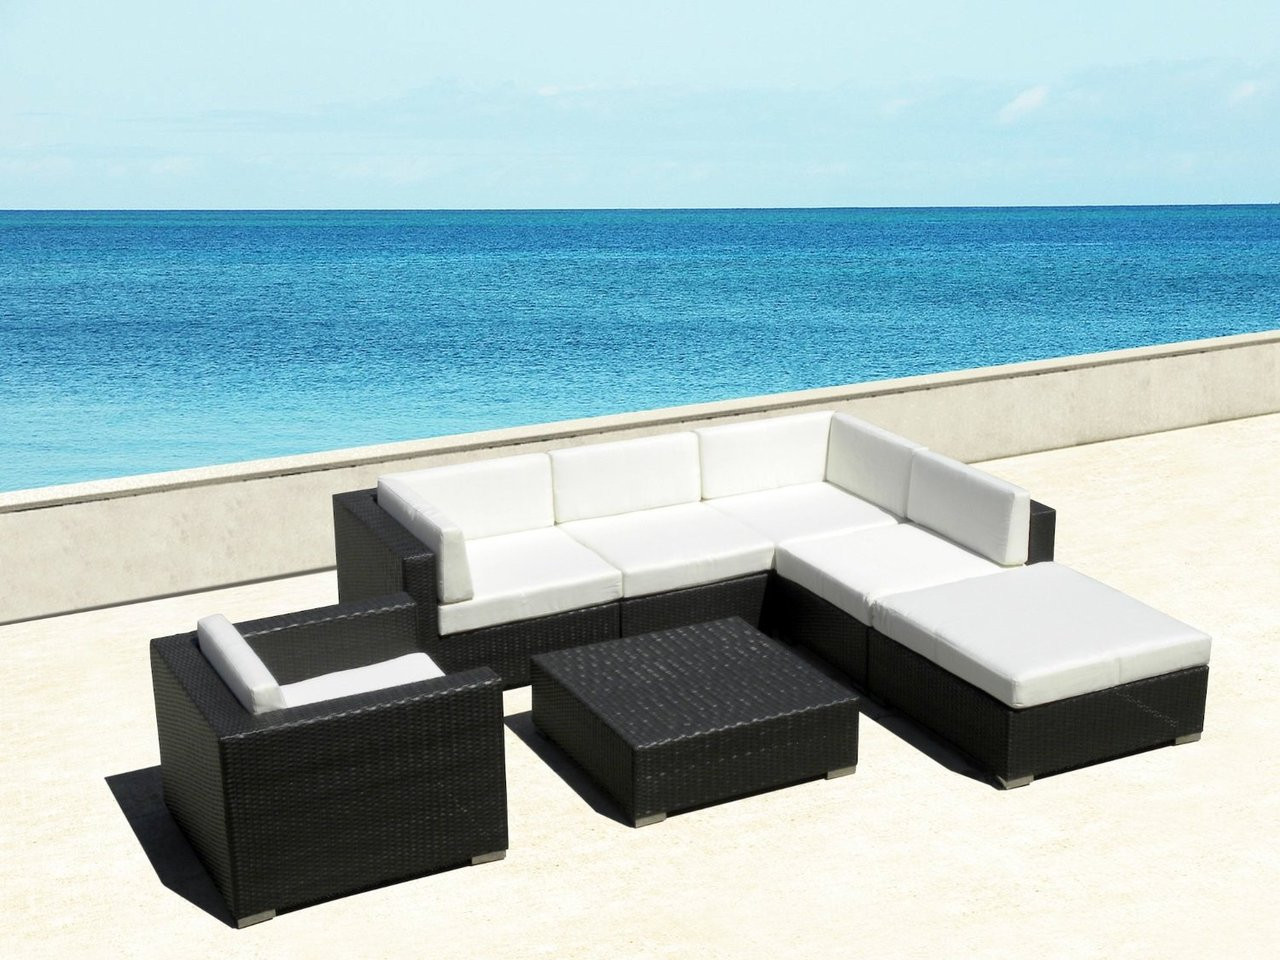 montclair all weather wicker sectional sofa set brown leather color restoration outdoor 7pc i shop now free shipping